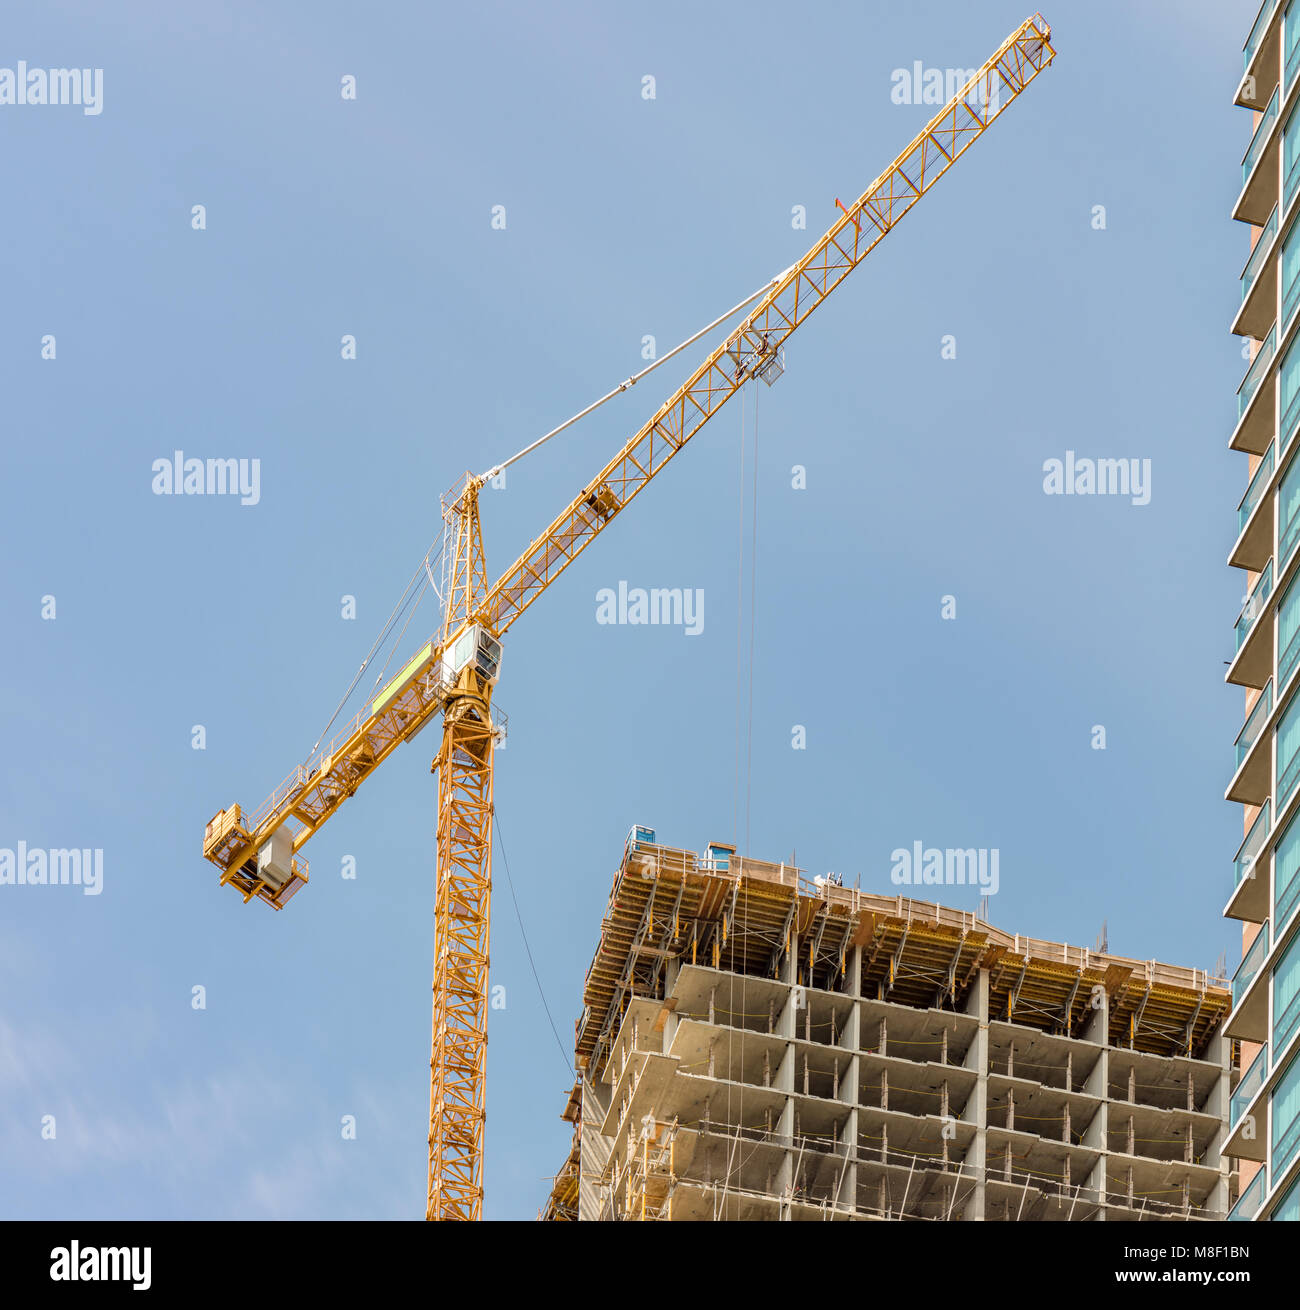 new building, construction of a modern multi-story building with a tower crane and other construction equipment - Stock Image